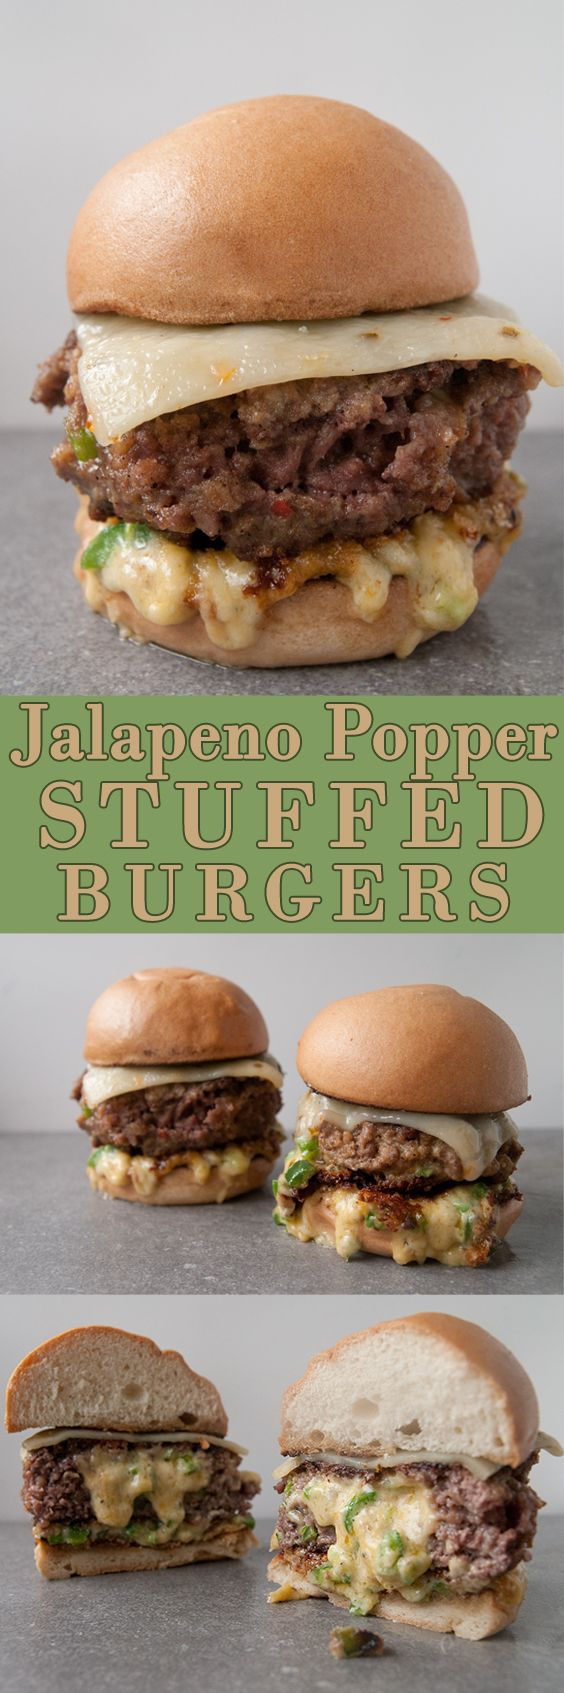 Jalapeno Popper Stuffed Burgers. You guys, these are a serious thing. We made homemade jalapeno dip and stuffed it into a burger. Let that bit of food heaven just sink in for a second. Are you mind blown? I sure was. Because it was THAT good.